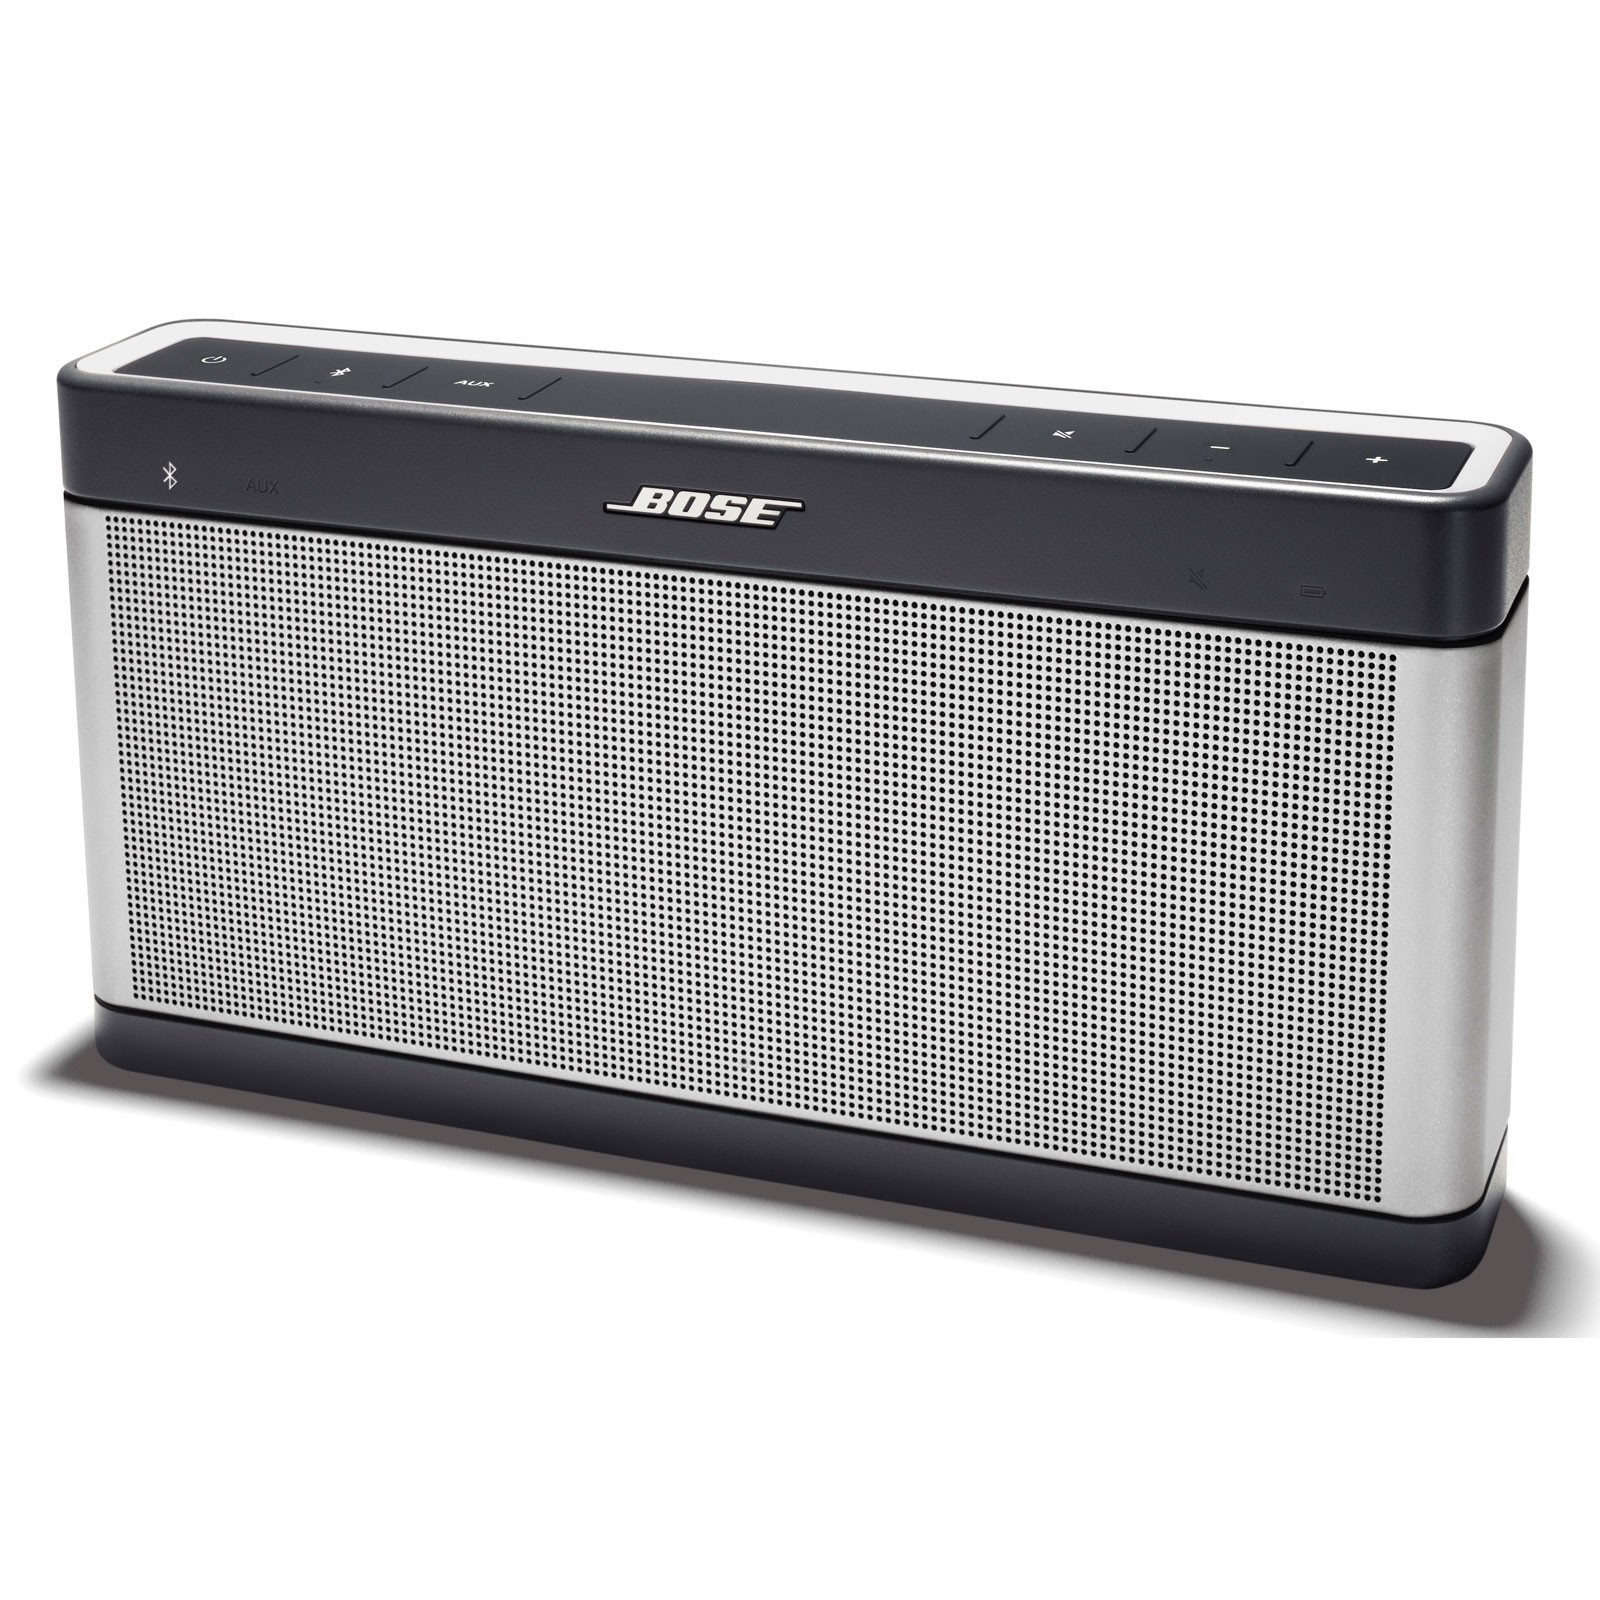 bose soundlink 3 marrakech au meilleur prix avec 1 an de garantie. Black Bedroom Furniture Sets. Home Design Ideas